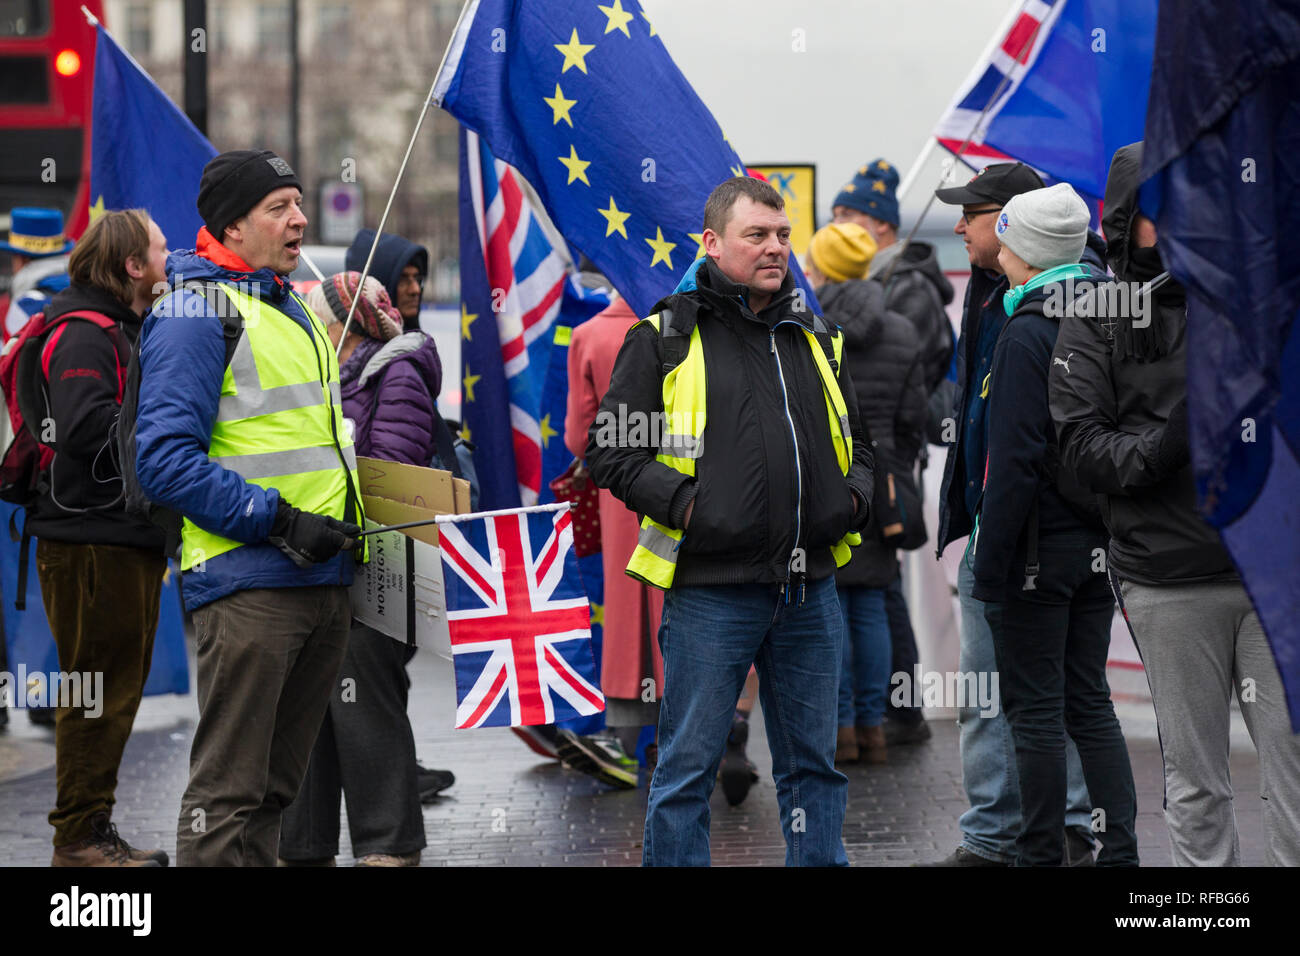 Far-Right protesters outside Houses of Parliament in London, demonstrate to Leave the EU on 29th March 2019 to coincide with the referendum result. - Stock Image